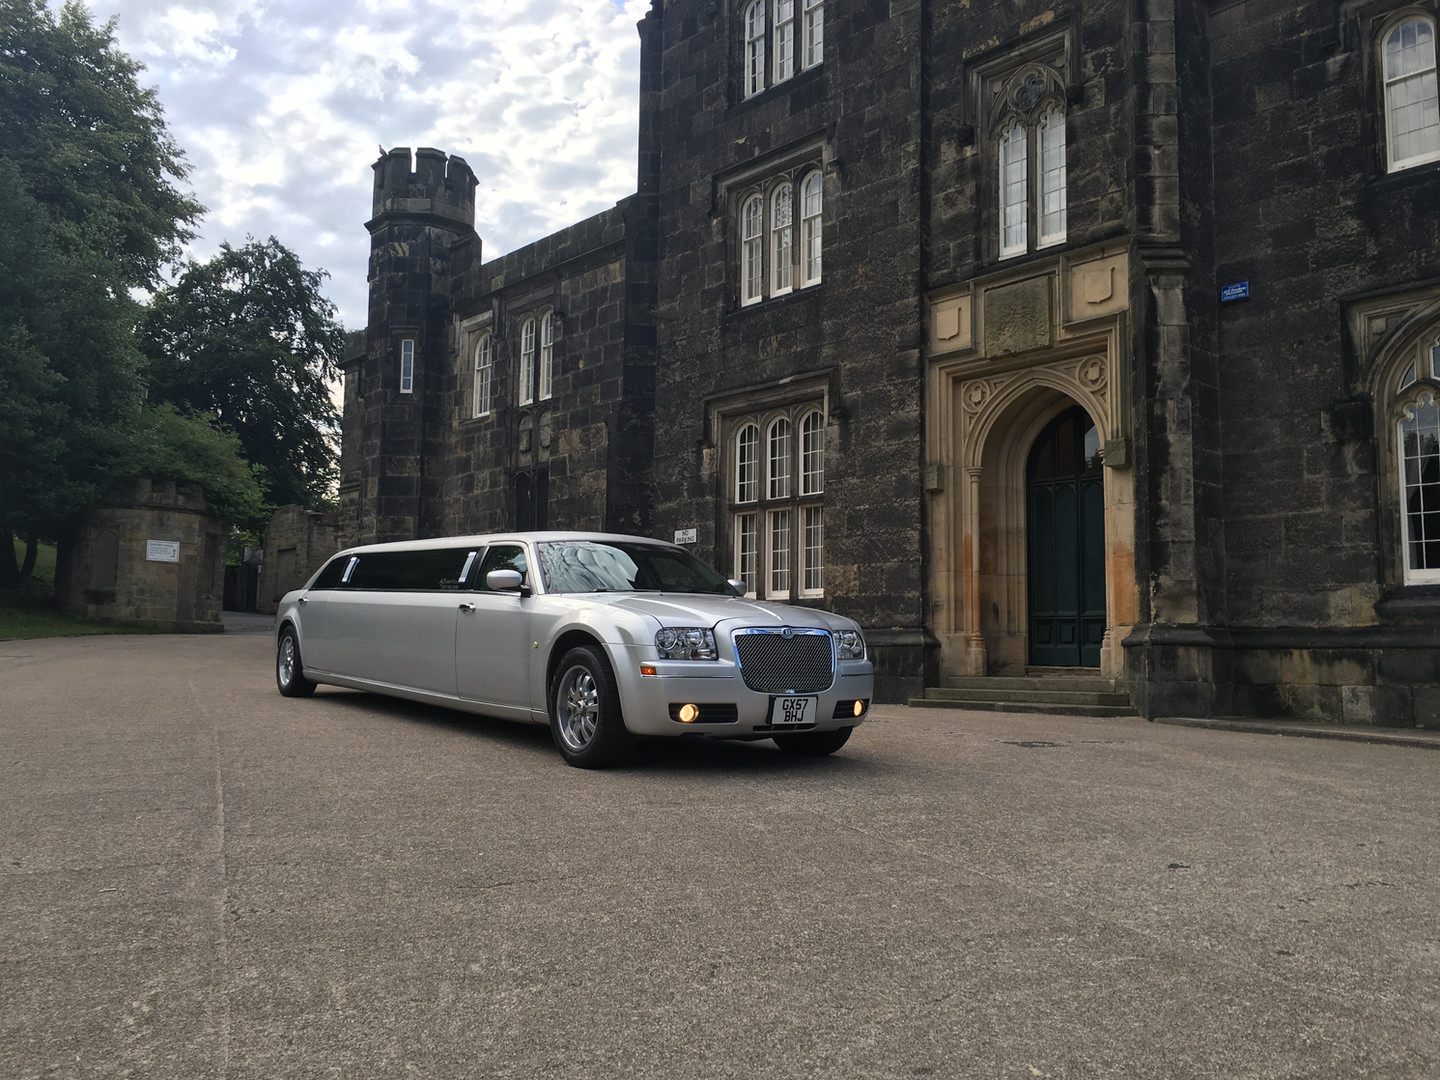 Silver Bentley style limo